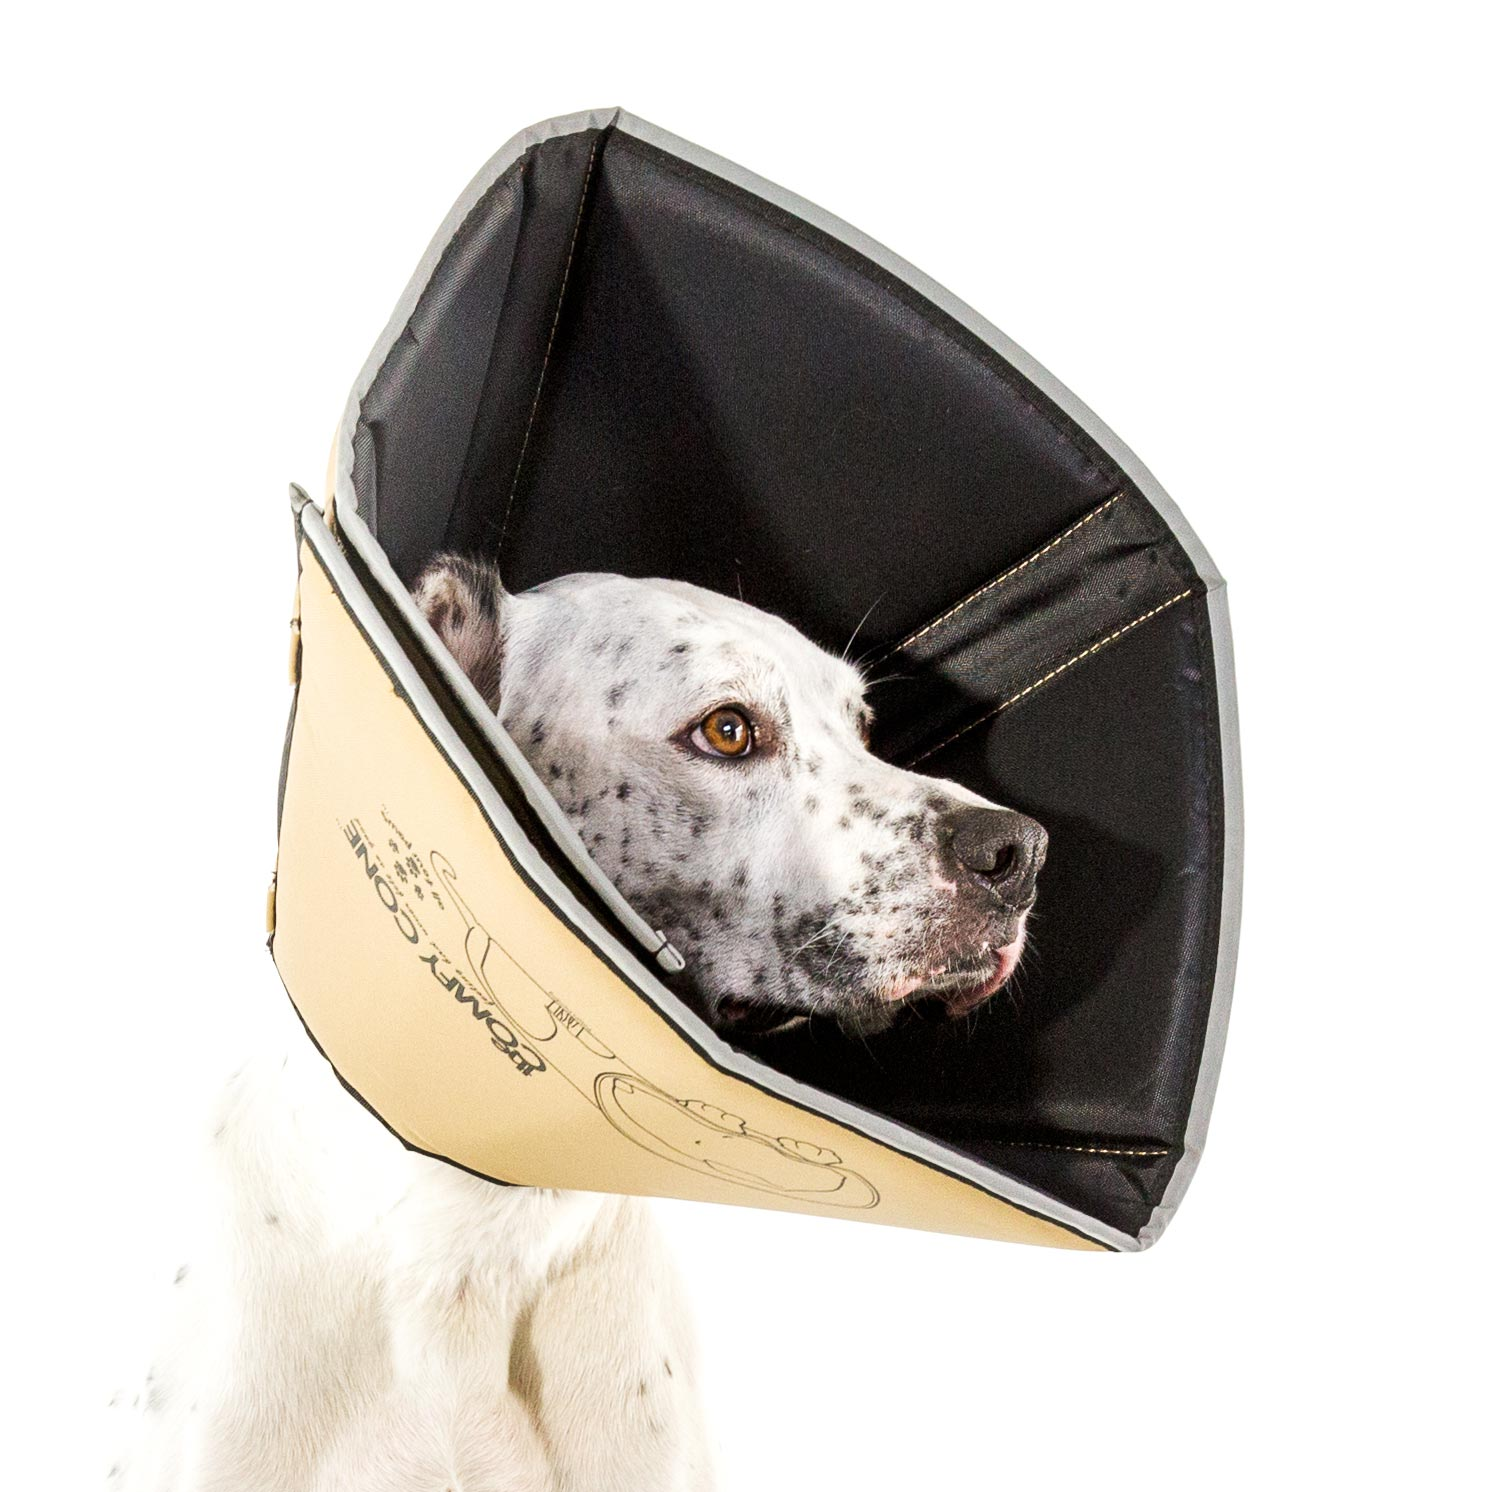 Features of the Comfy Cone